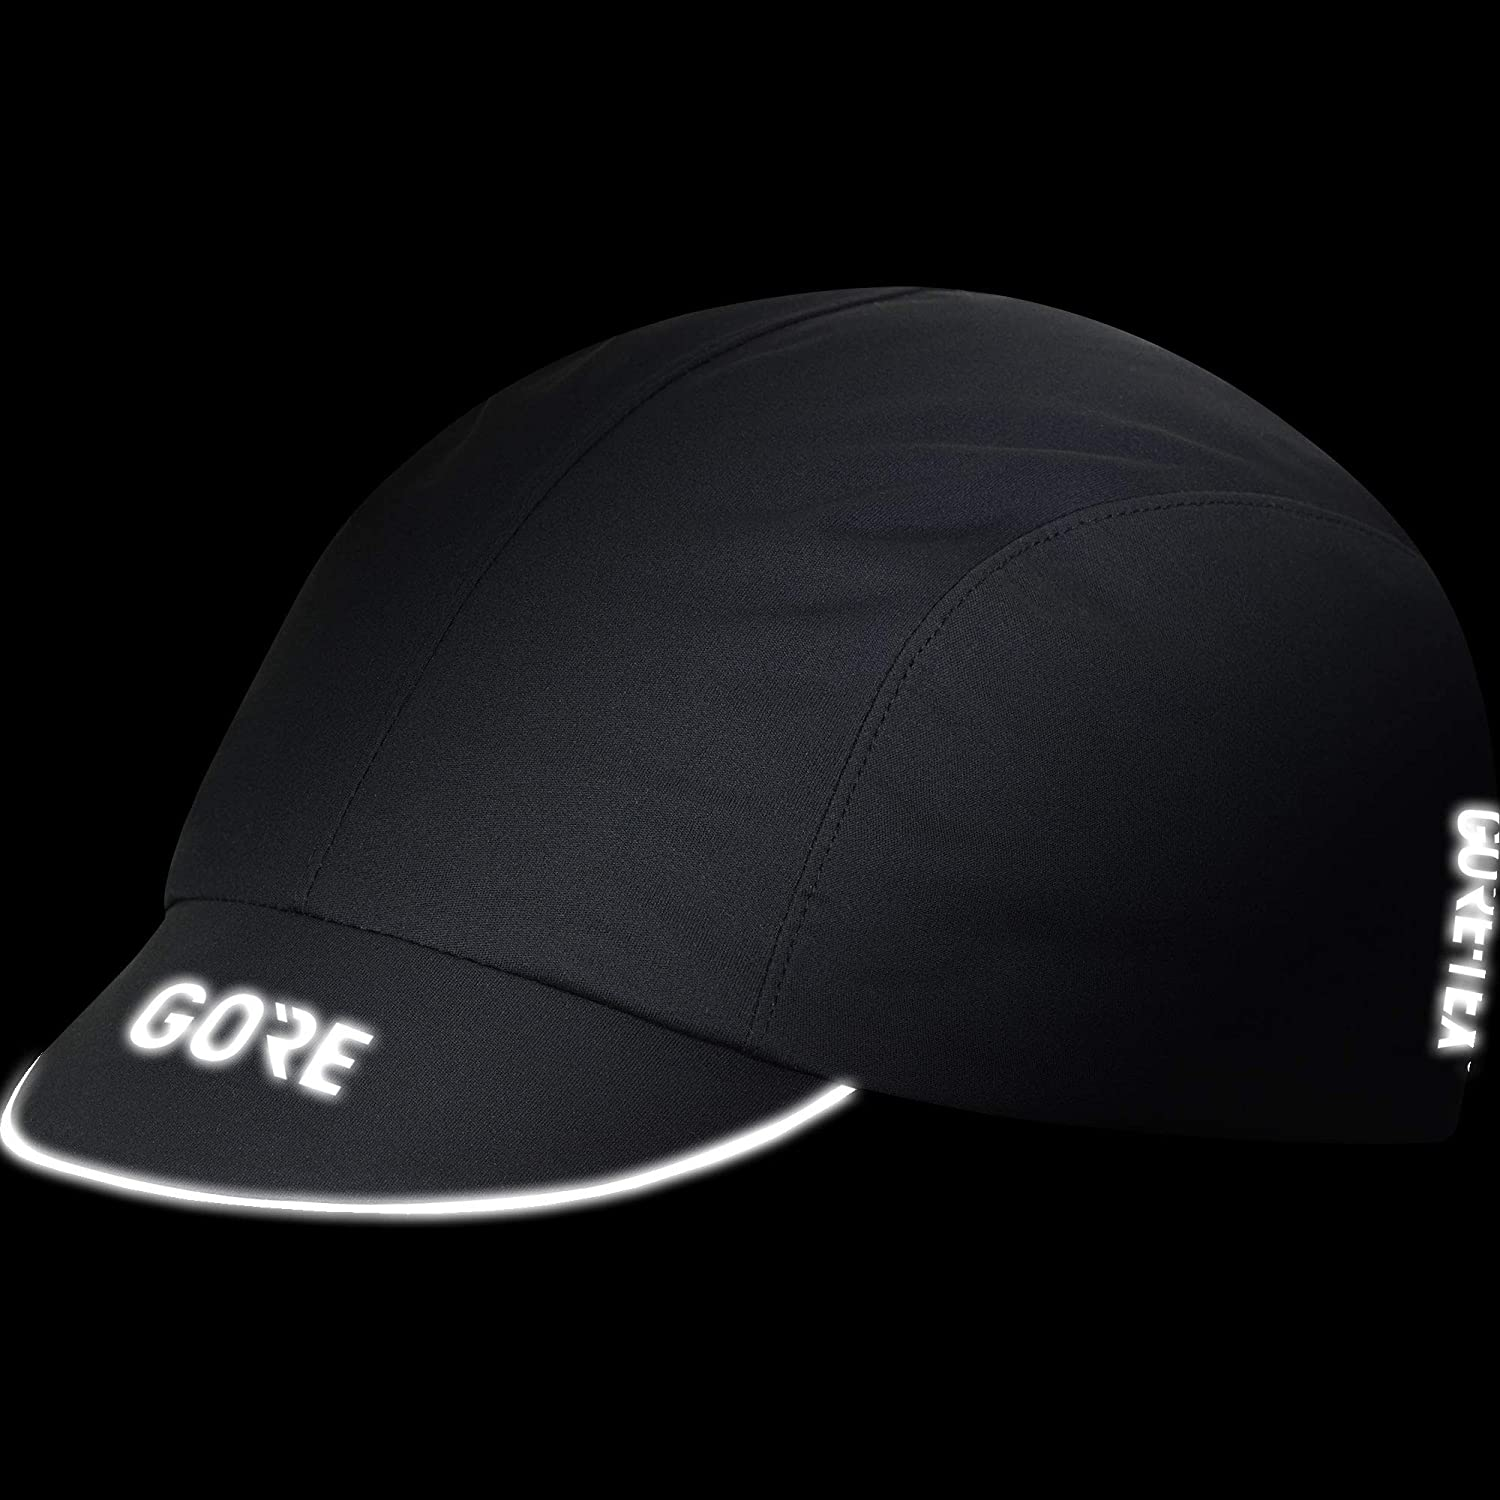 Amazon.com: GORE WEAR C7 Unisex Cycling Cap GORE-TEX, Size: ONE, Color: Black: Sports & Outdoors